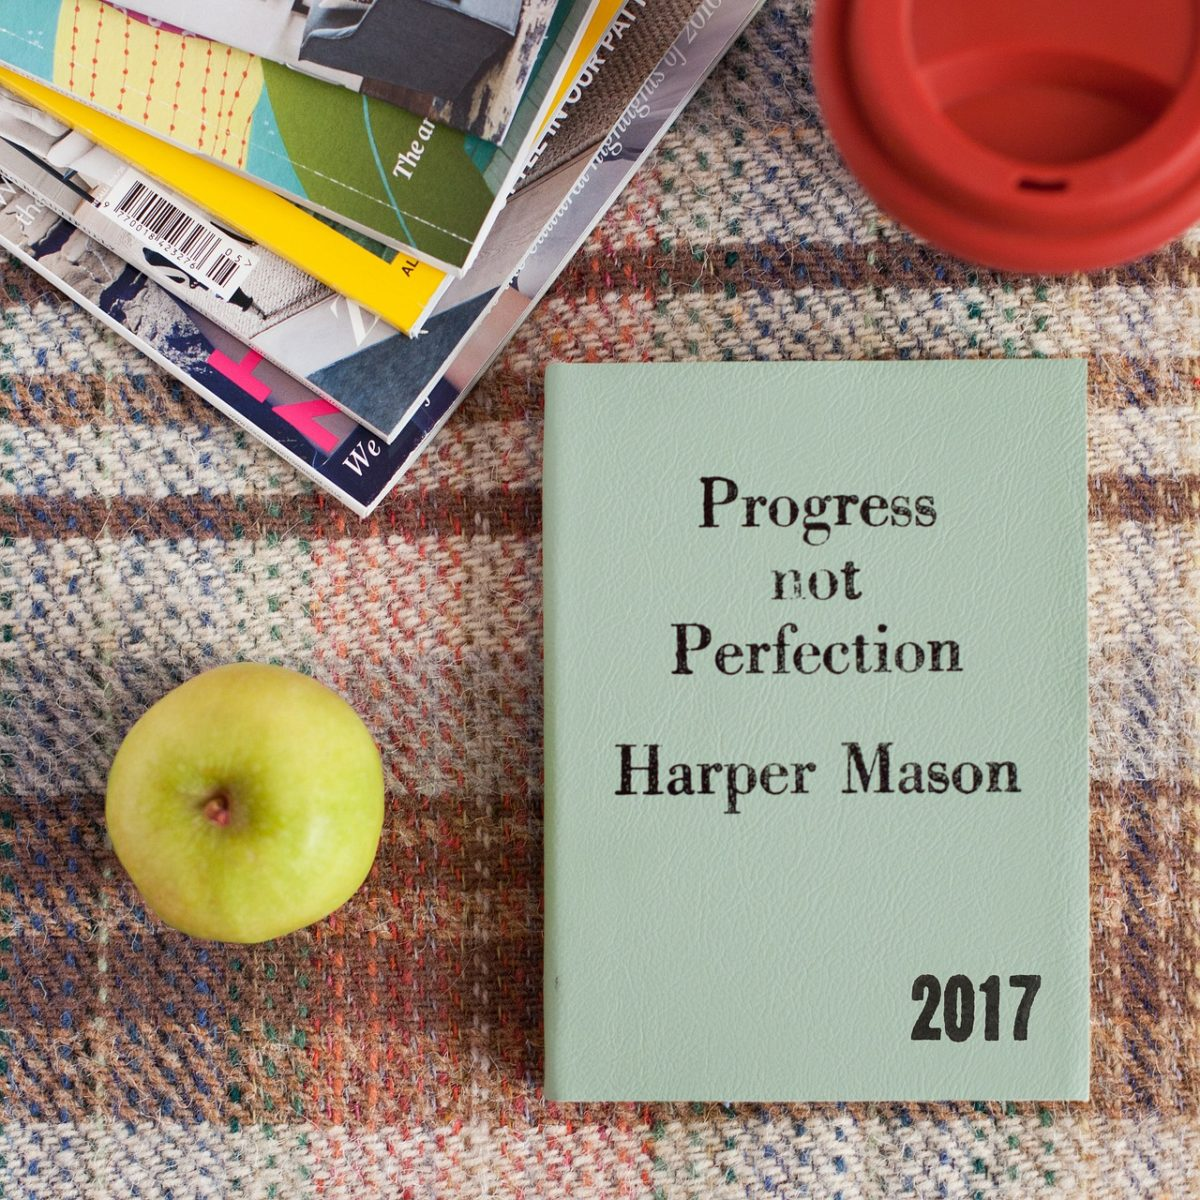 Perfection or Progress – Guest post from Mike Sessler